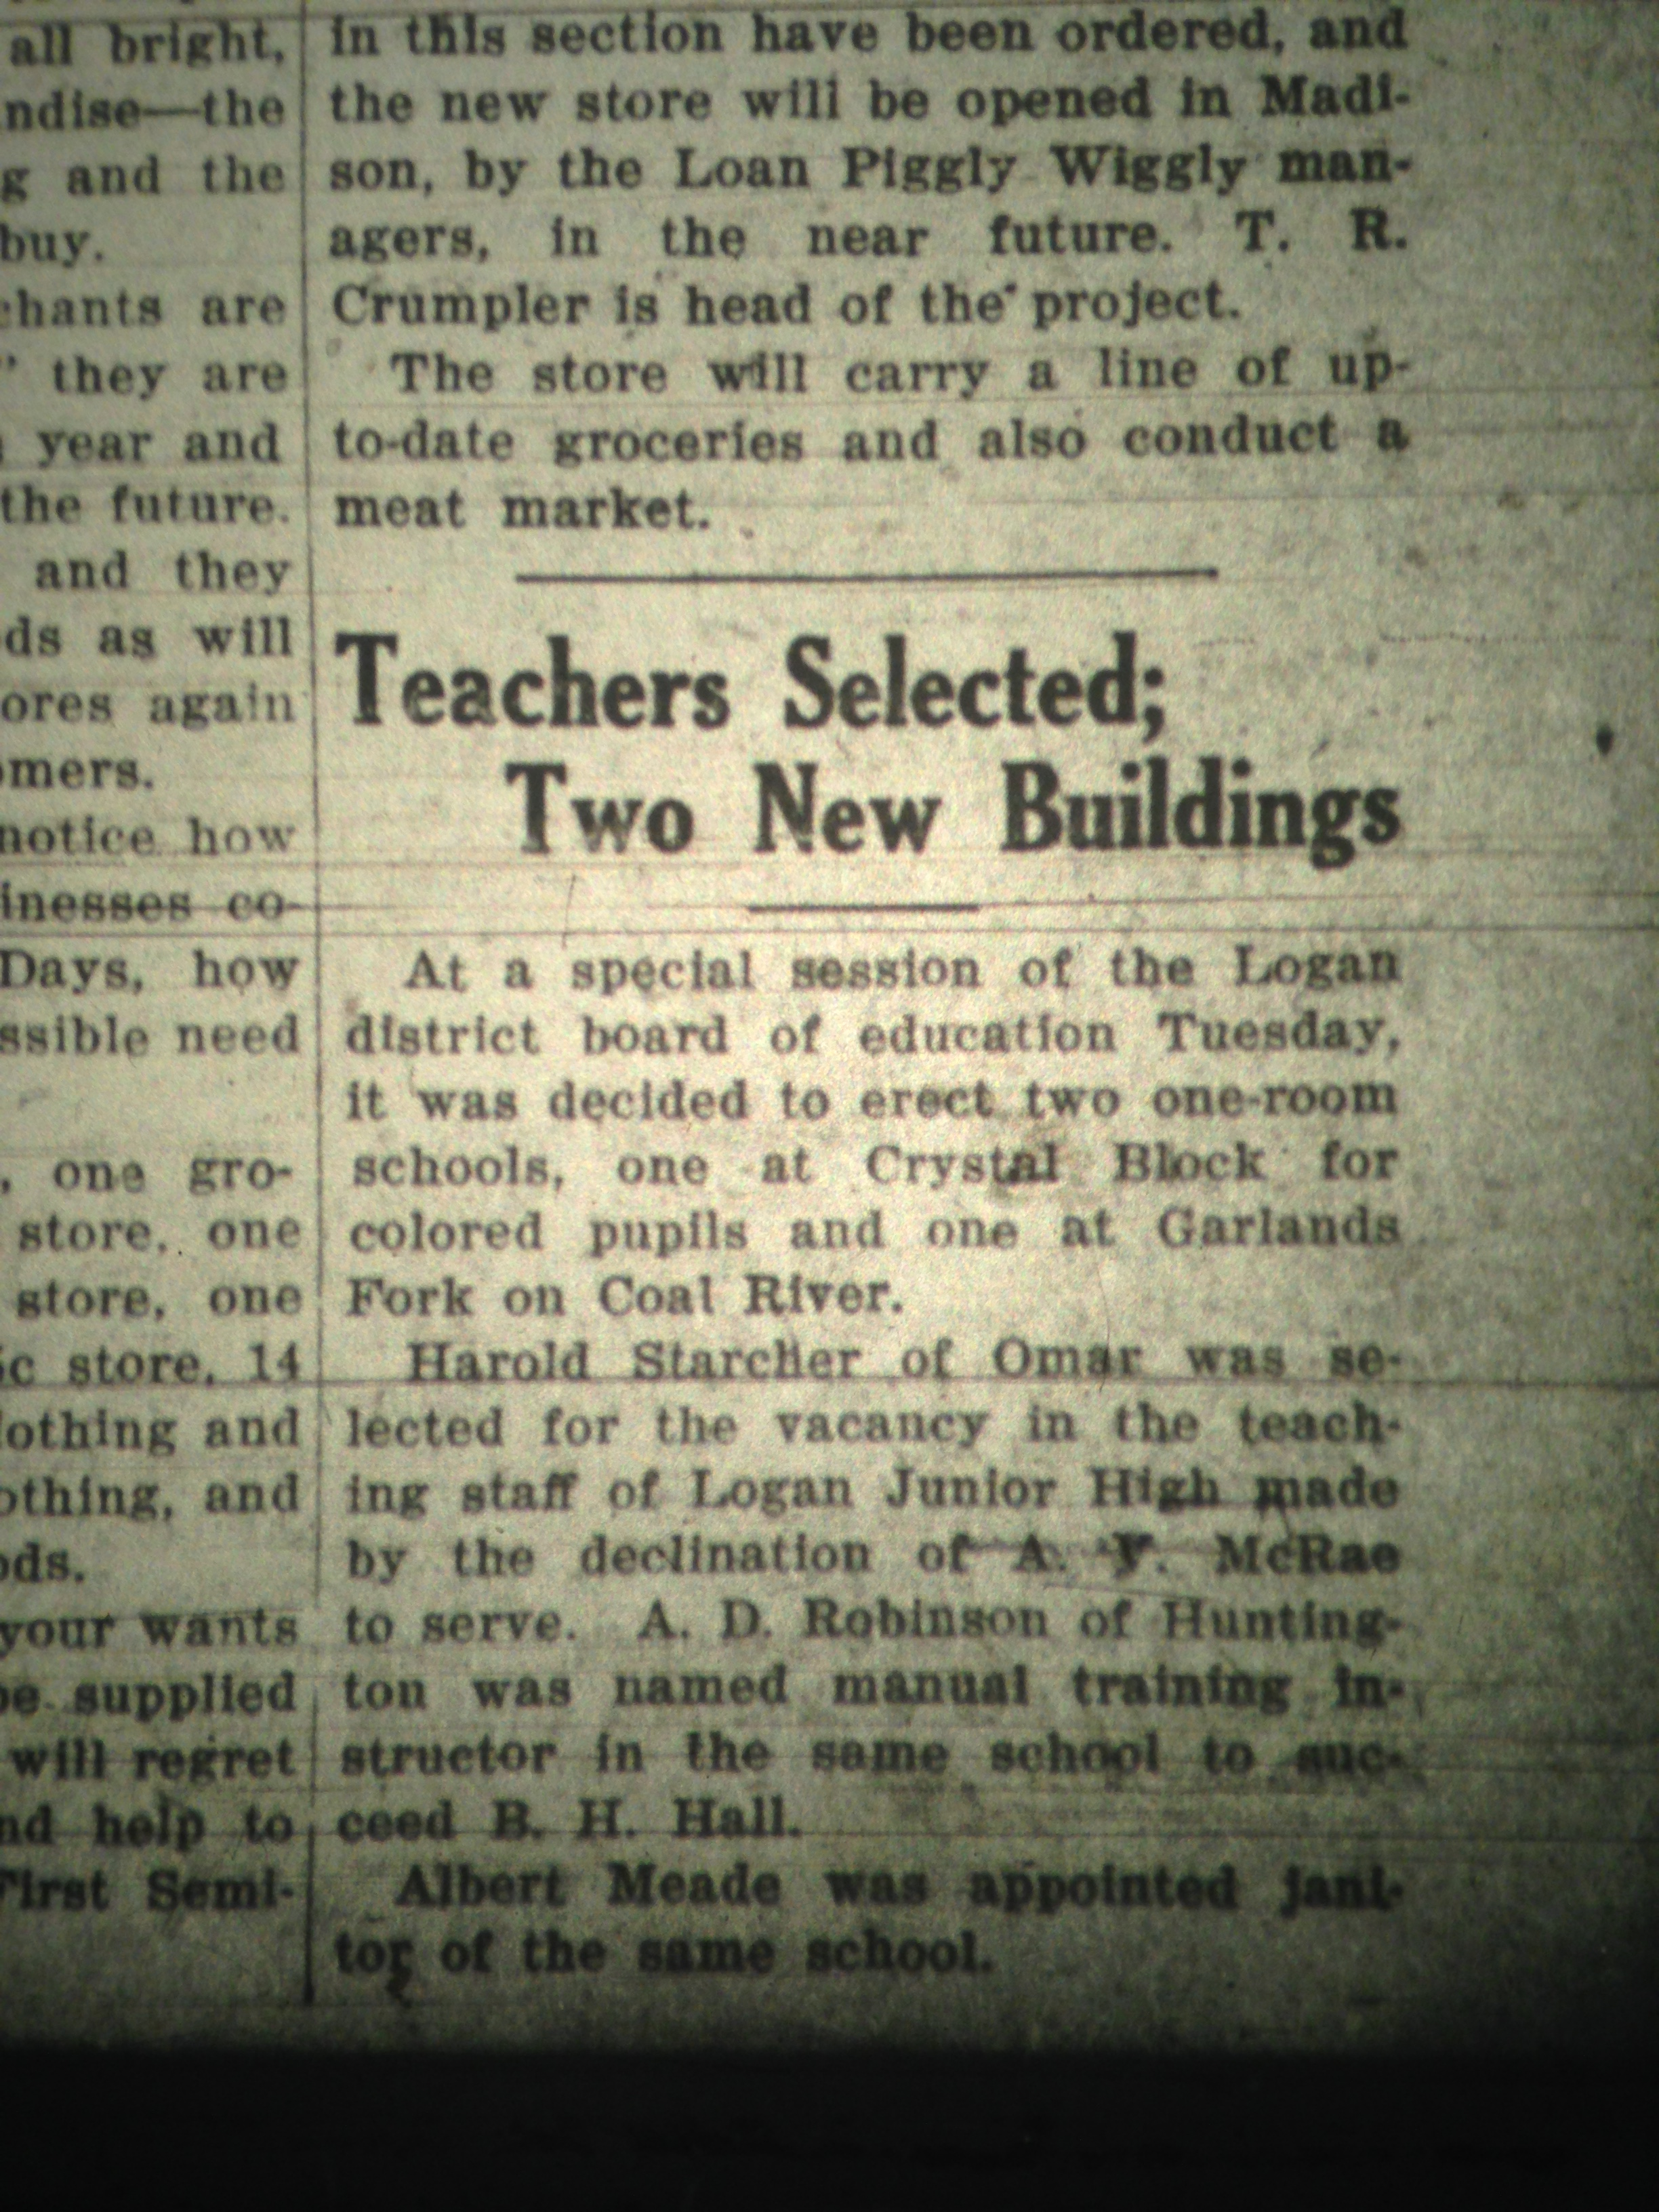 New Colored School at Crystal Block LB 08.12.1927 1